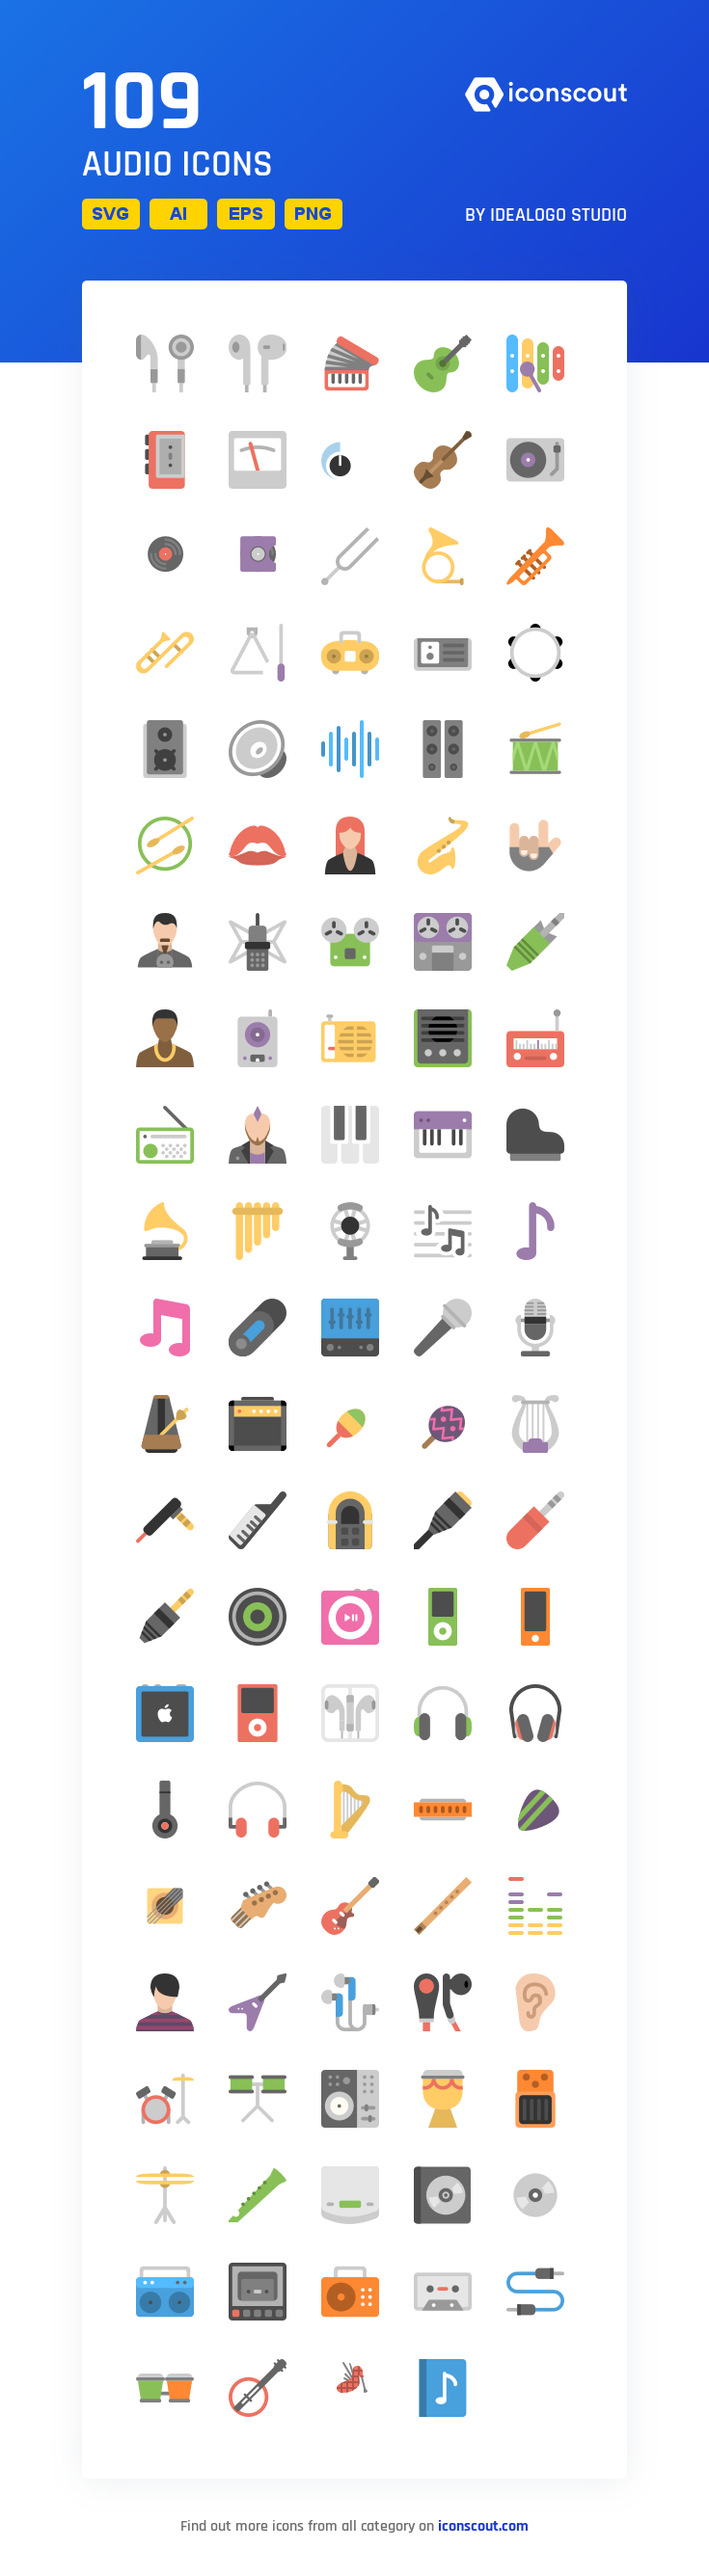 Download Audio Icon Pack Available In Svg Png Eps Ai Icon Fonts Icon Pack Audio Computer Headphones